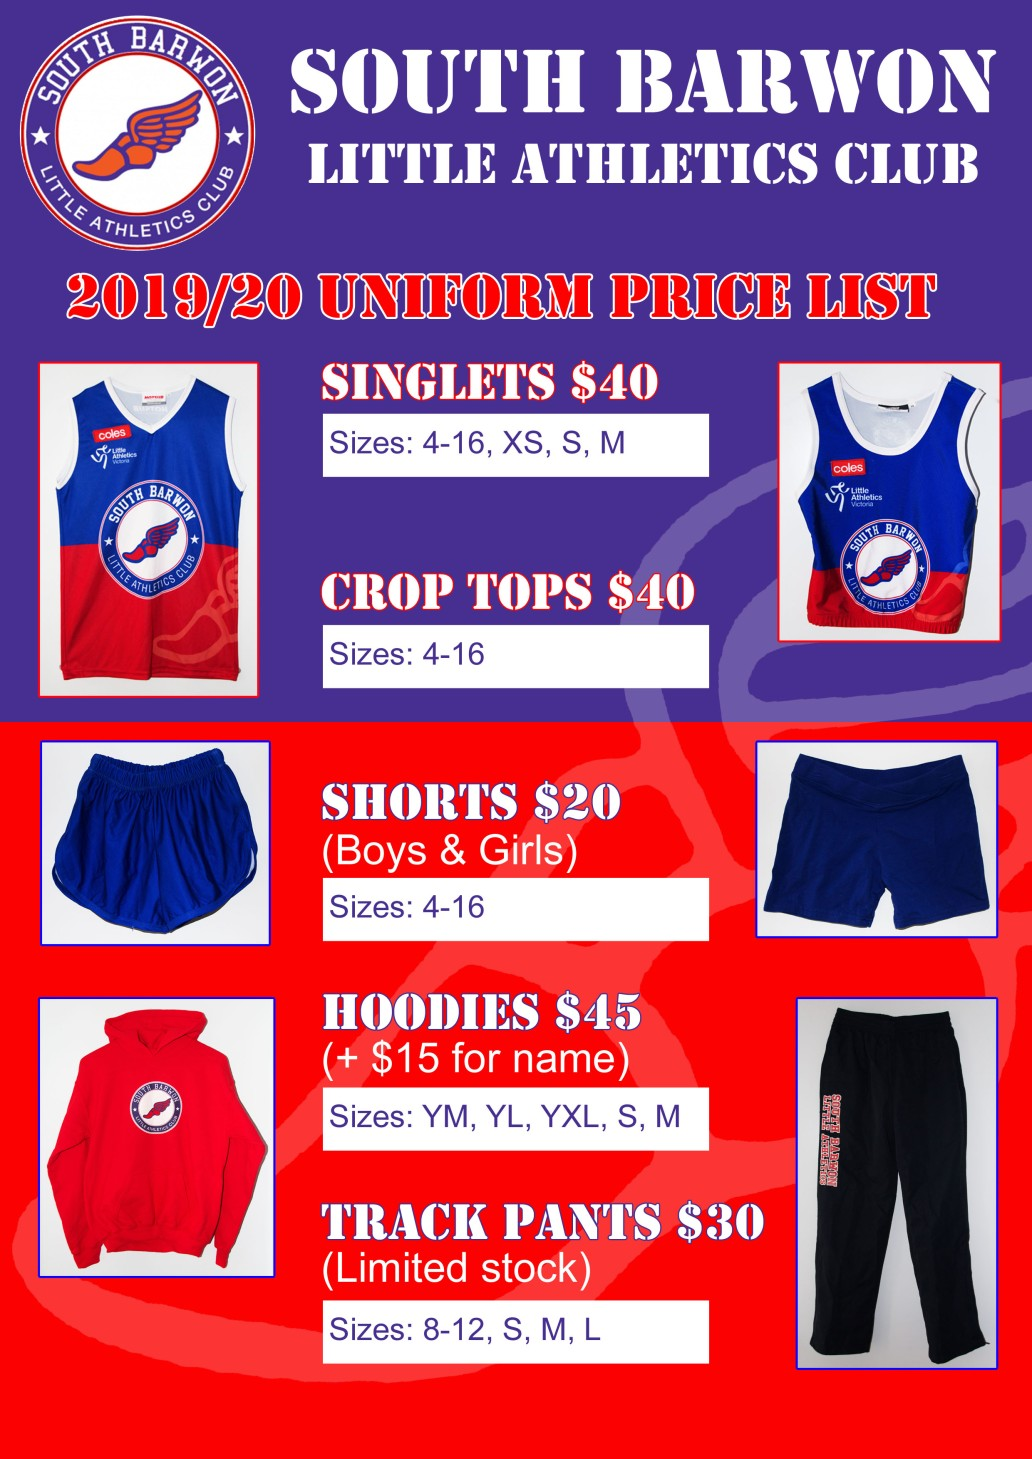 2019-20 Uniform Price List